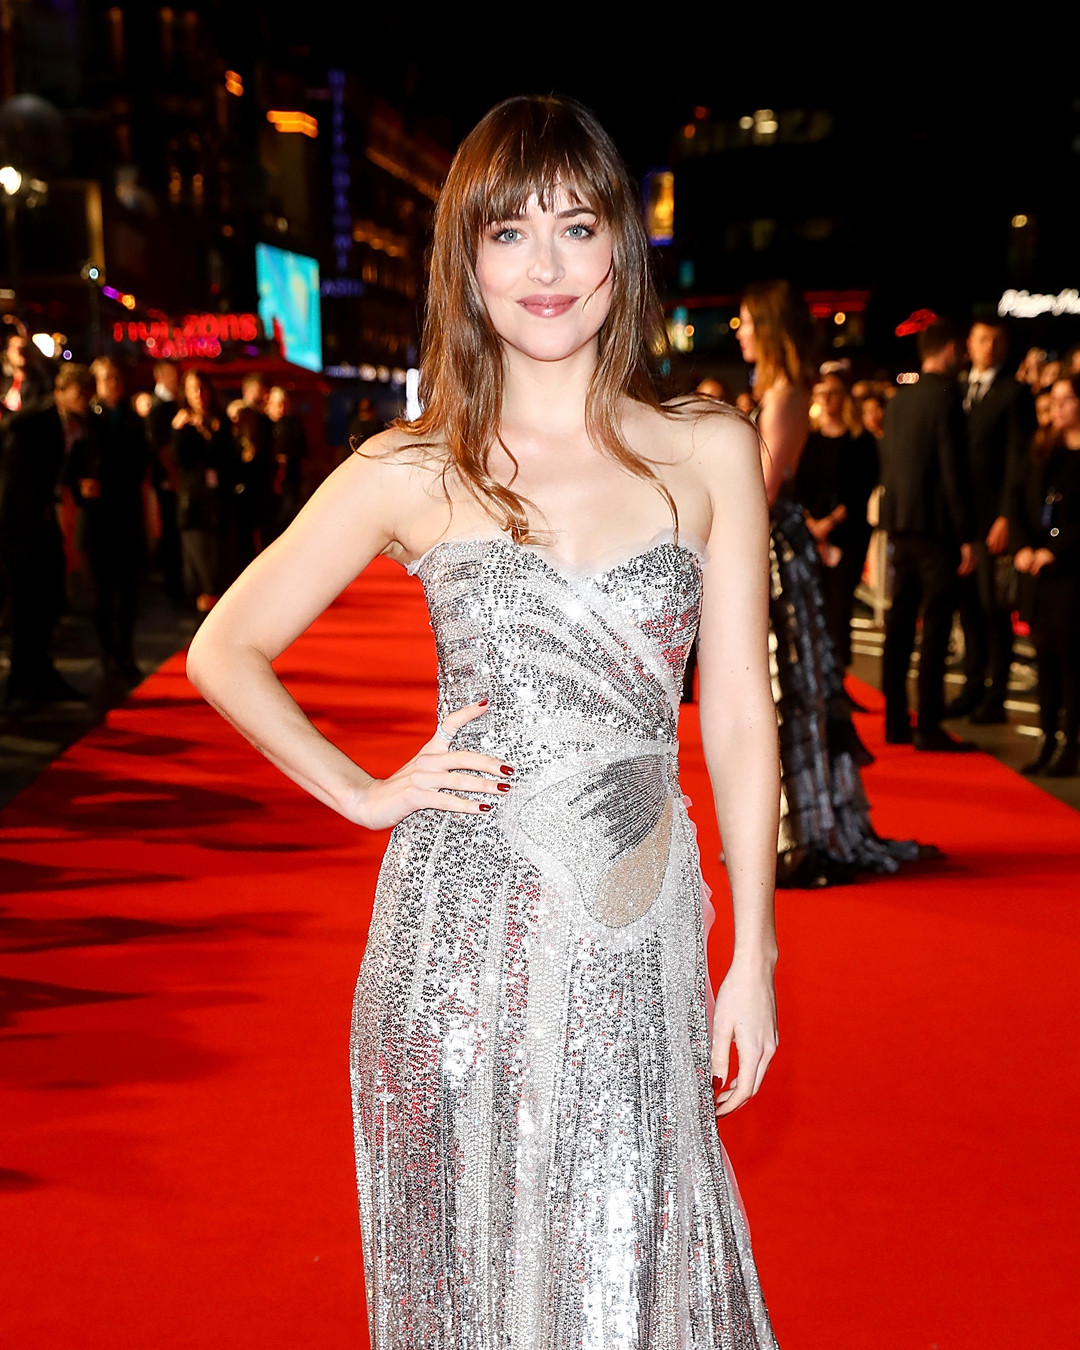 Dakota Johnson Is a Style Star With 6 Epic Back-to-Back Outfits